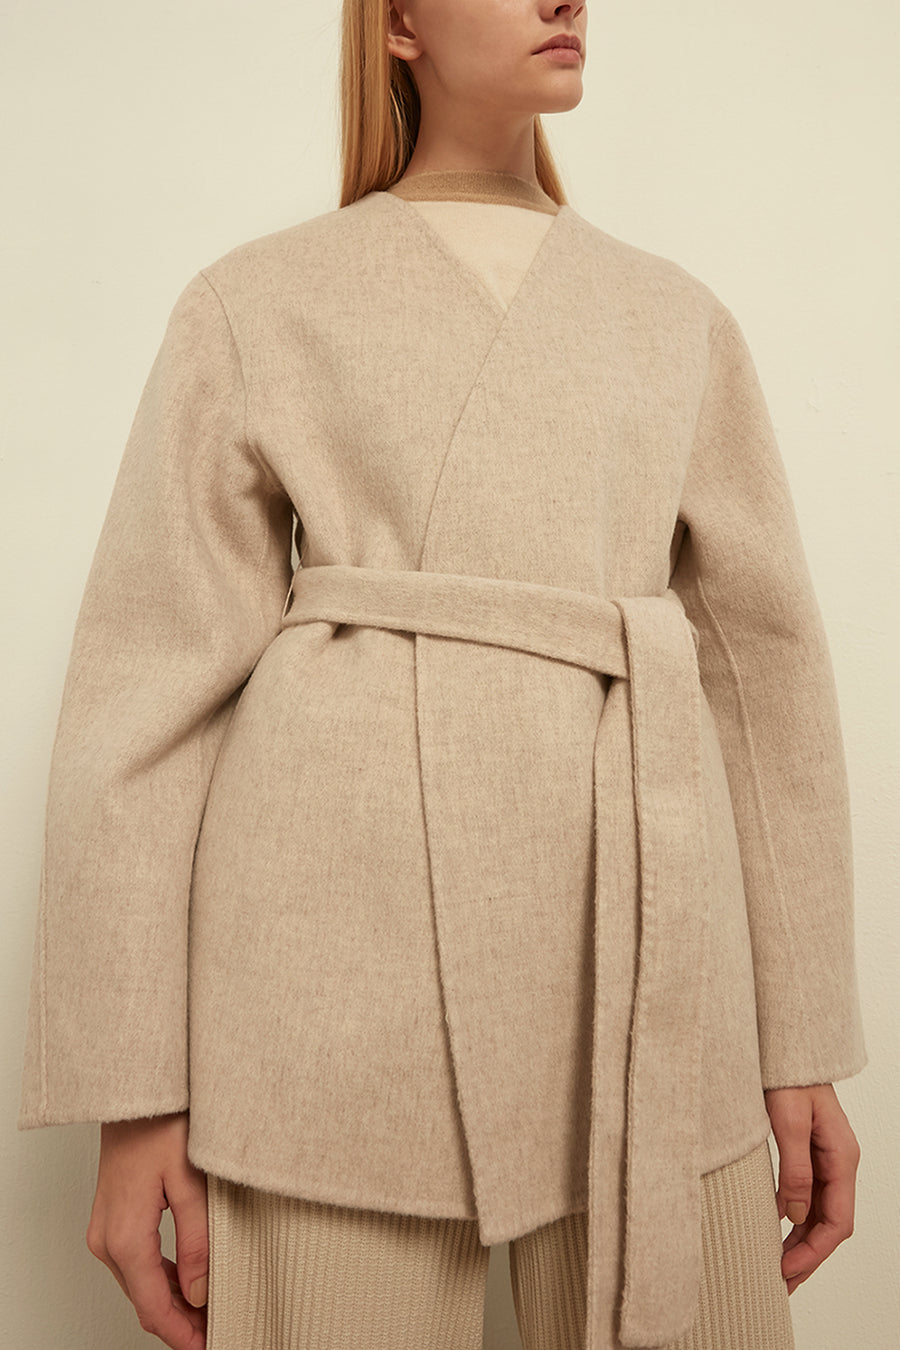 Voluminous belted wool coat - Zelle Studio